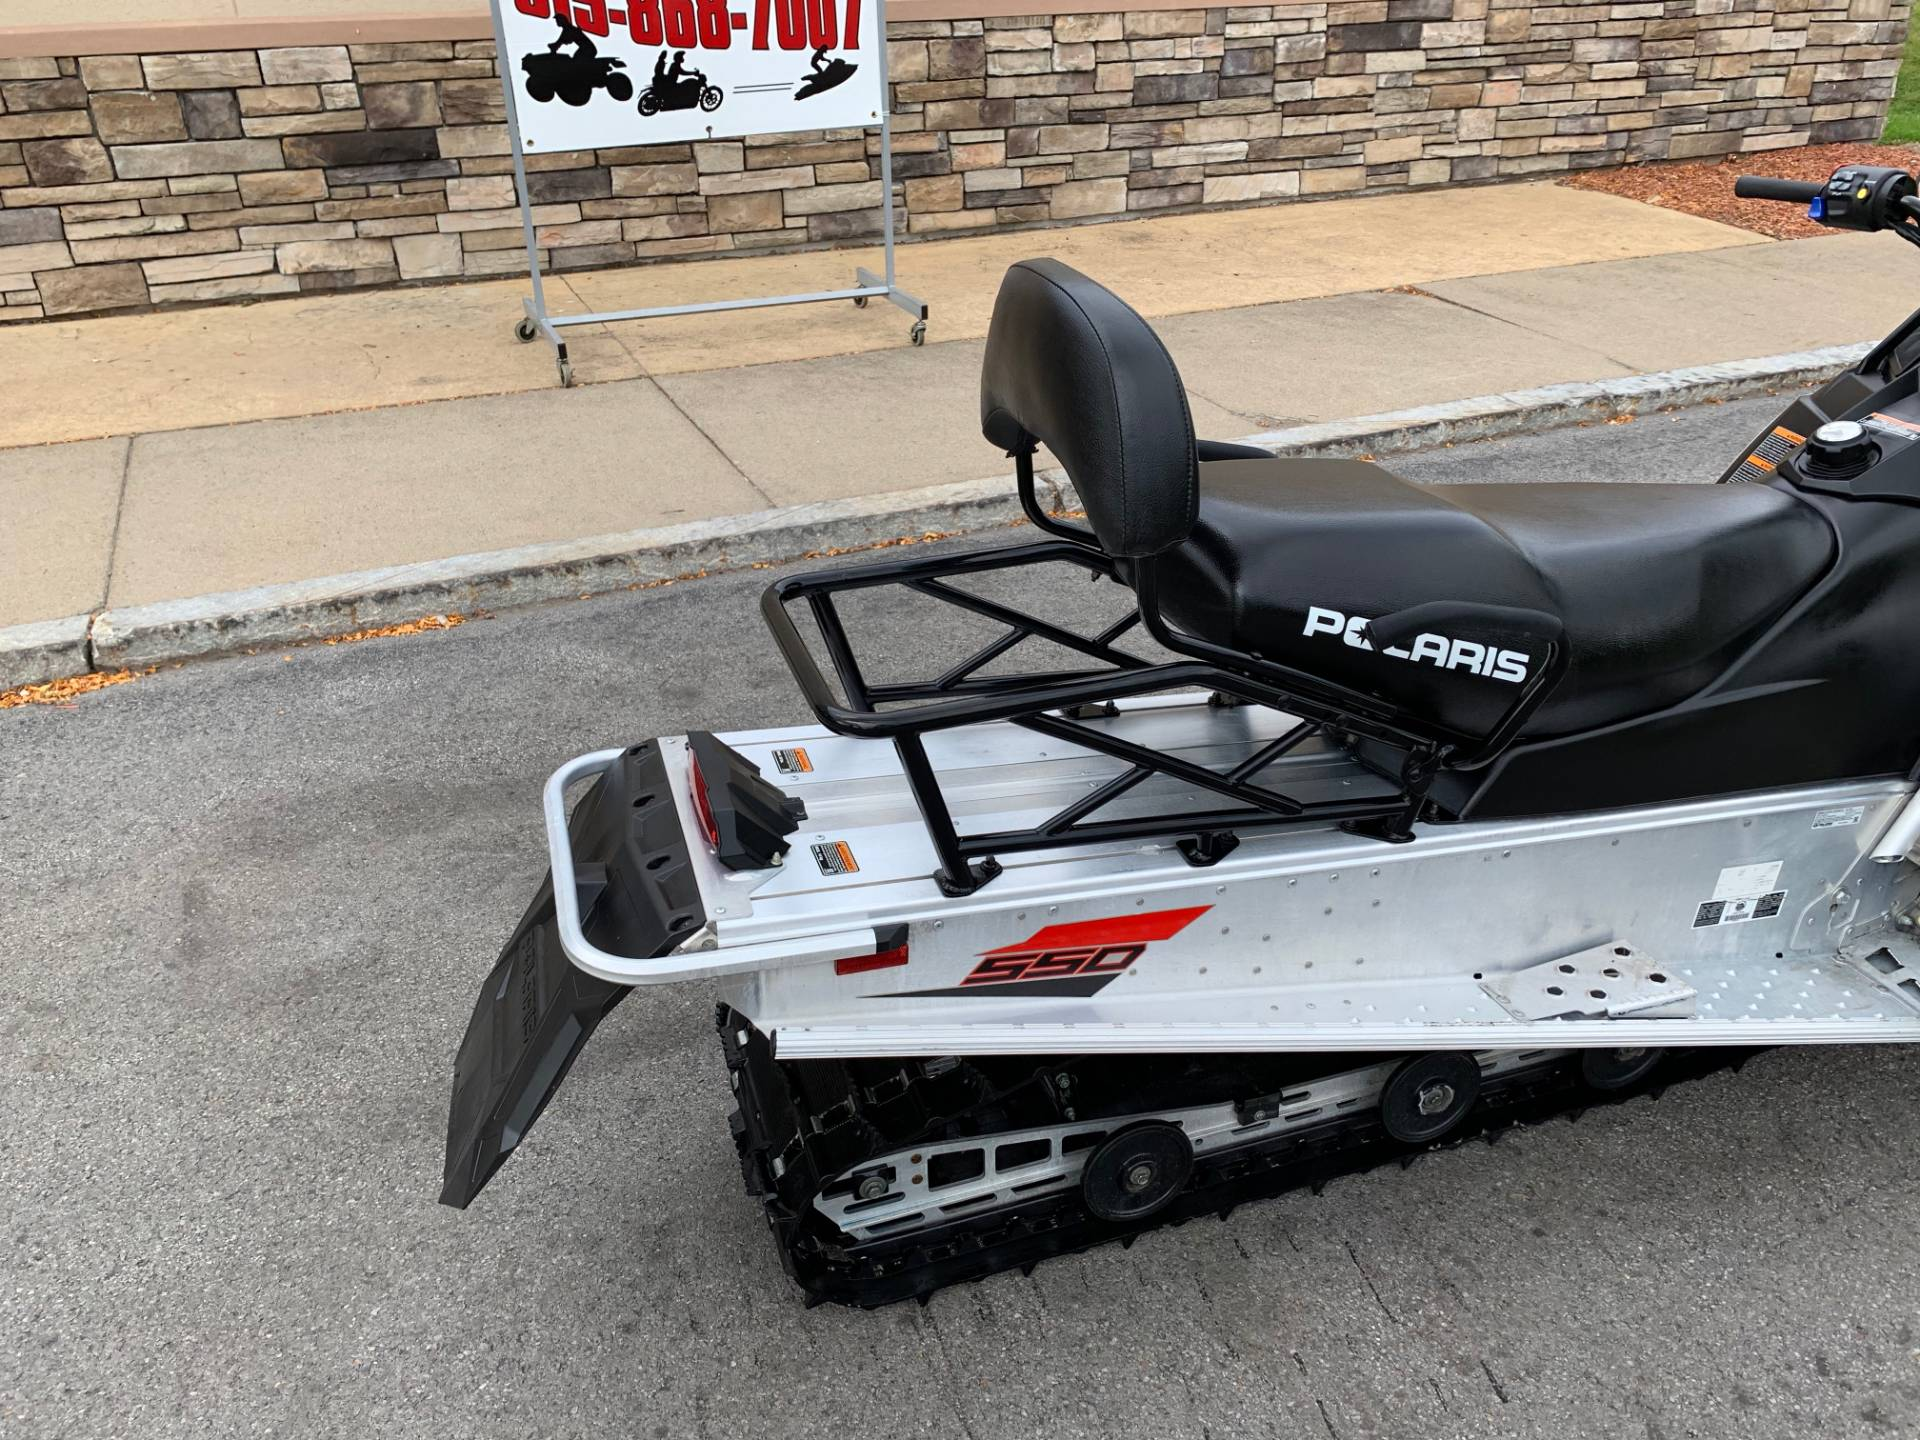 2019 Polaris 550 INDY LXT ES in Herkimer, New York - Photo 10